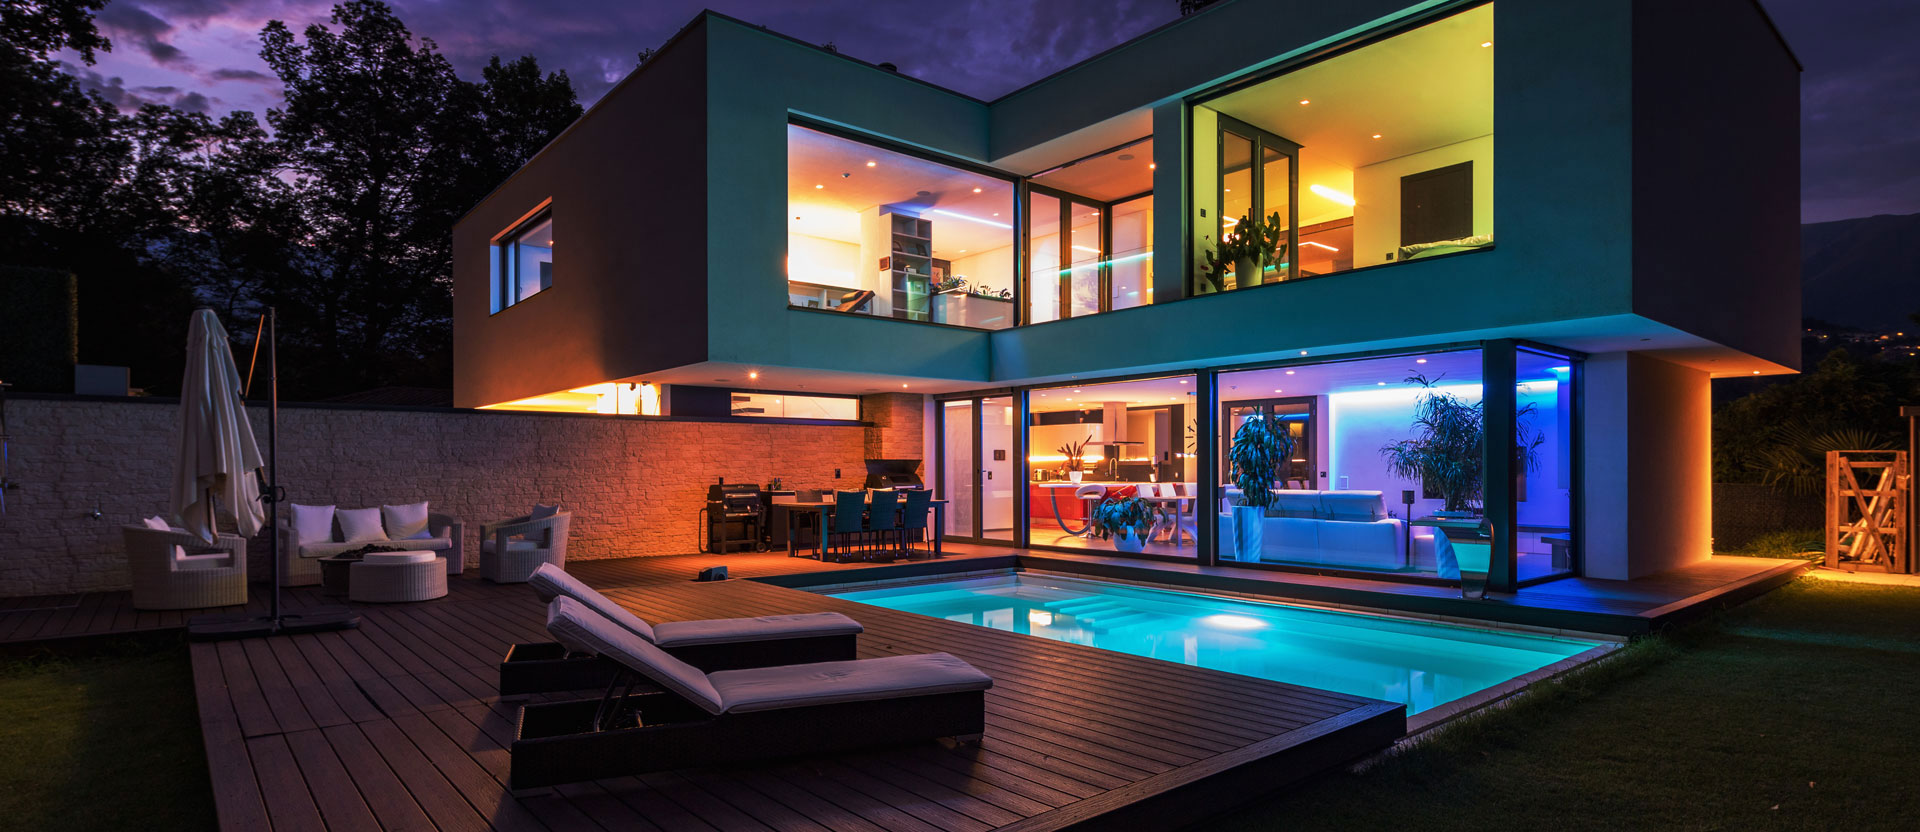 AB-Audio-Visual-SmartHome-Iconic-Home-1920x832-Image